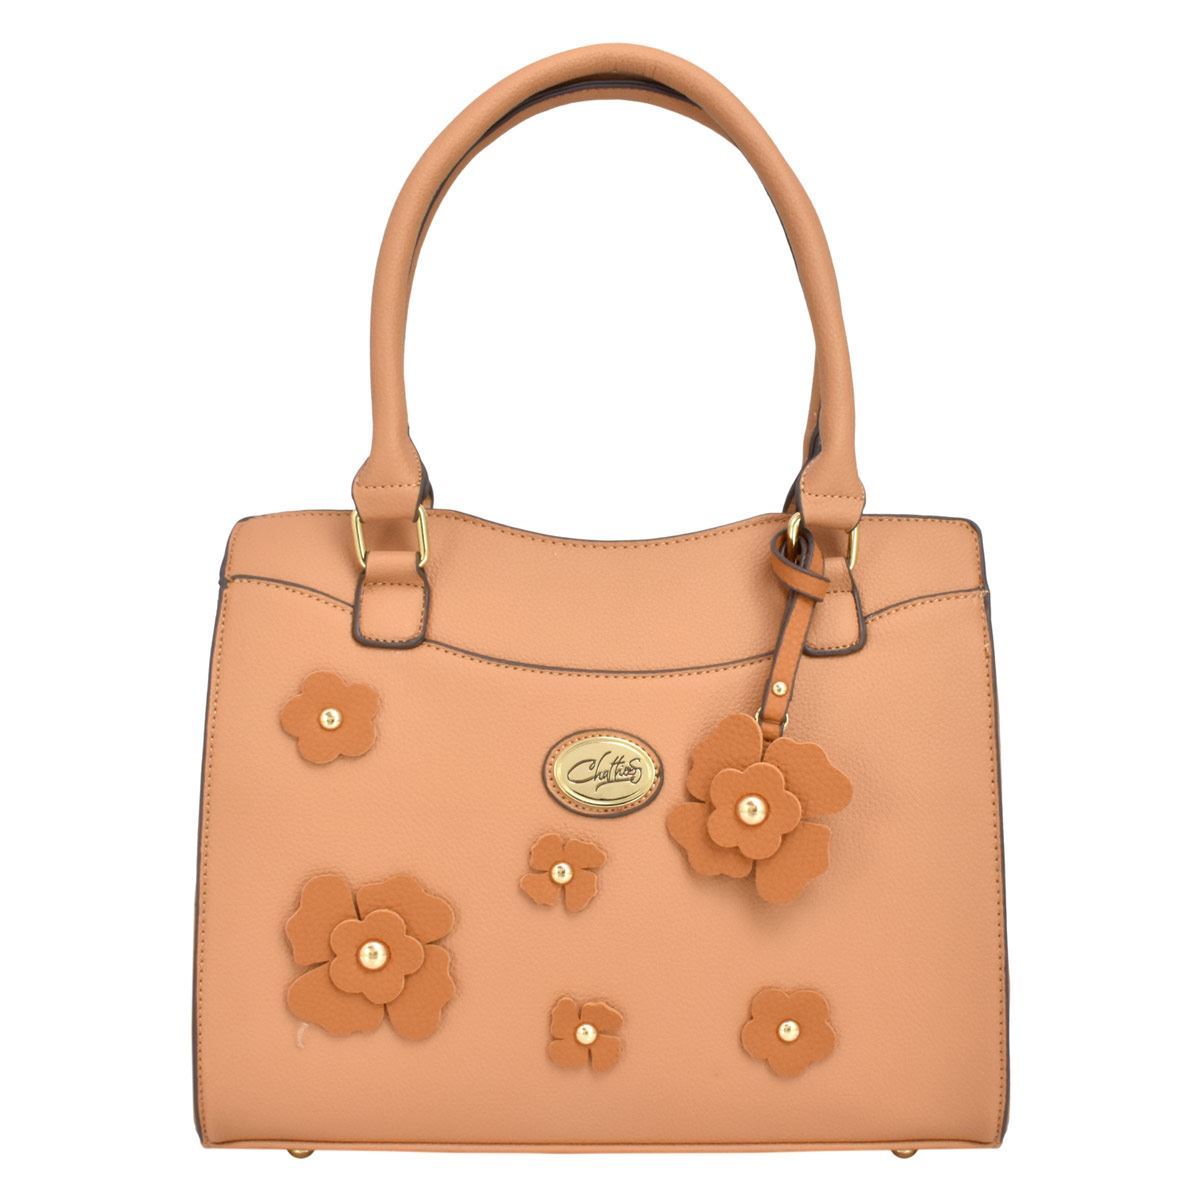 Bolso tote Chatties camel